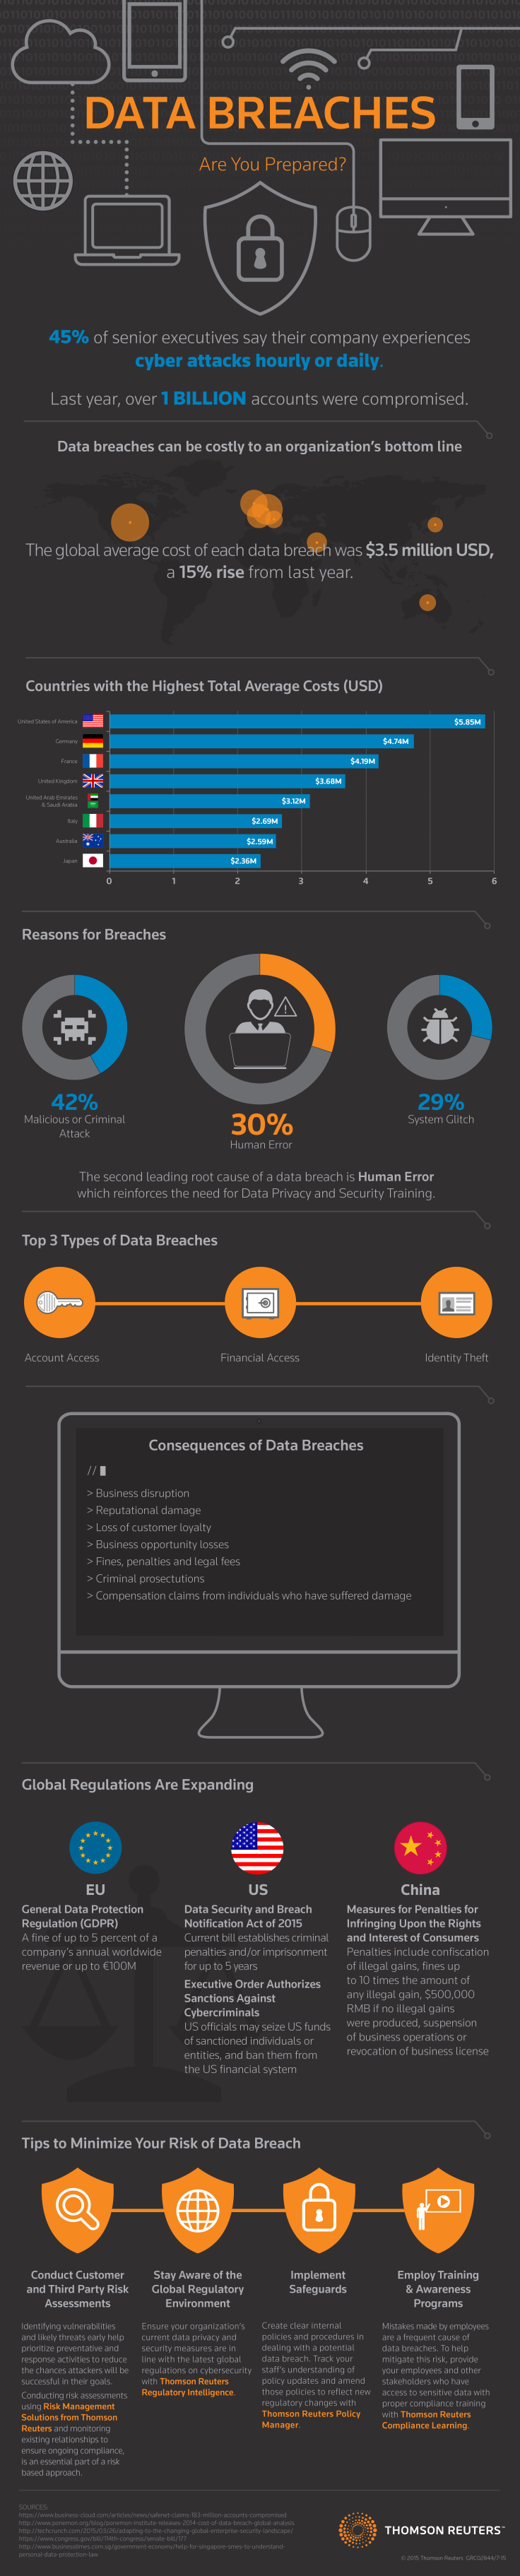 Thomson Reuters data-breaches